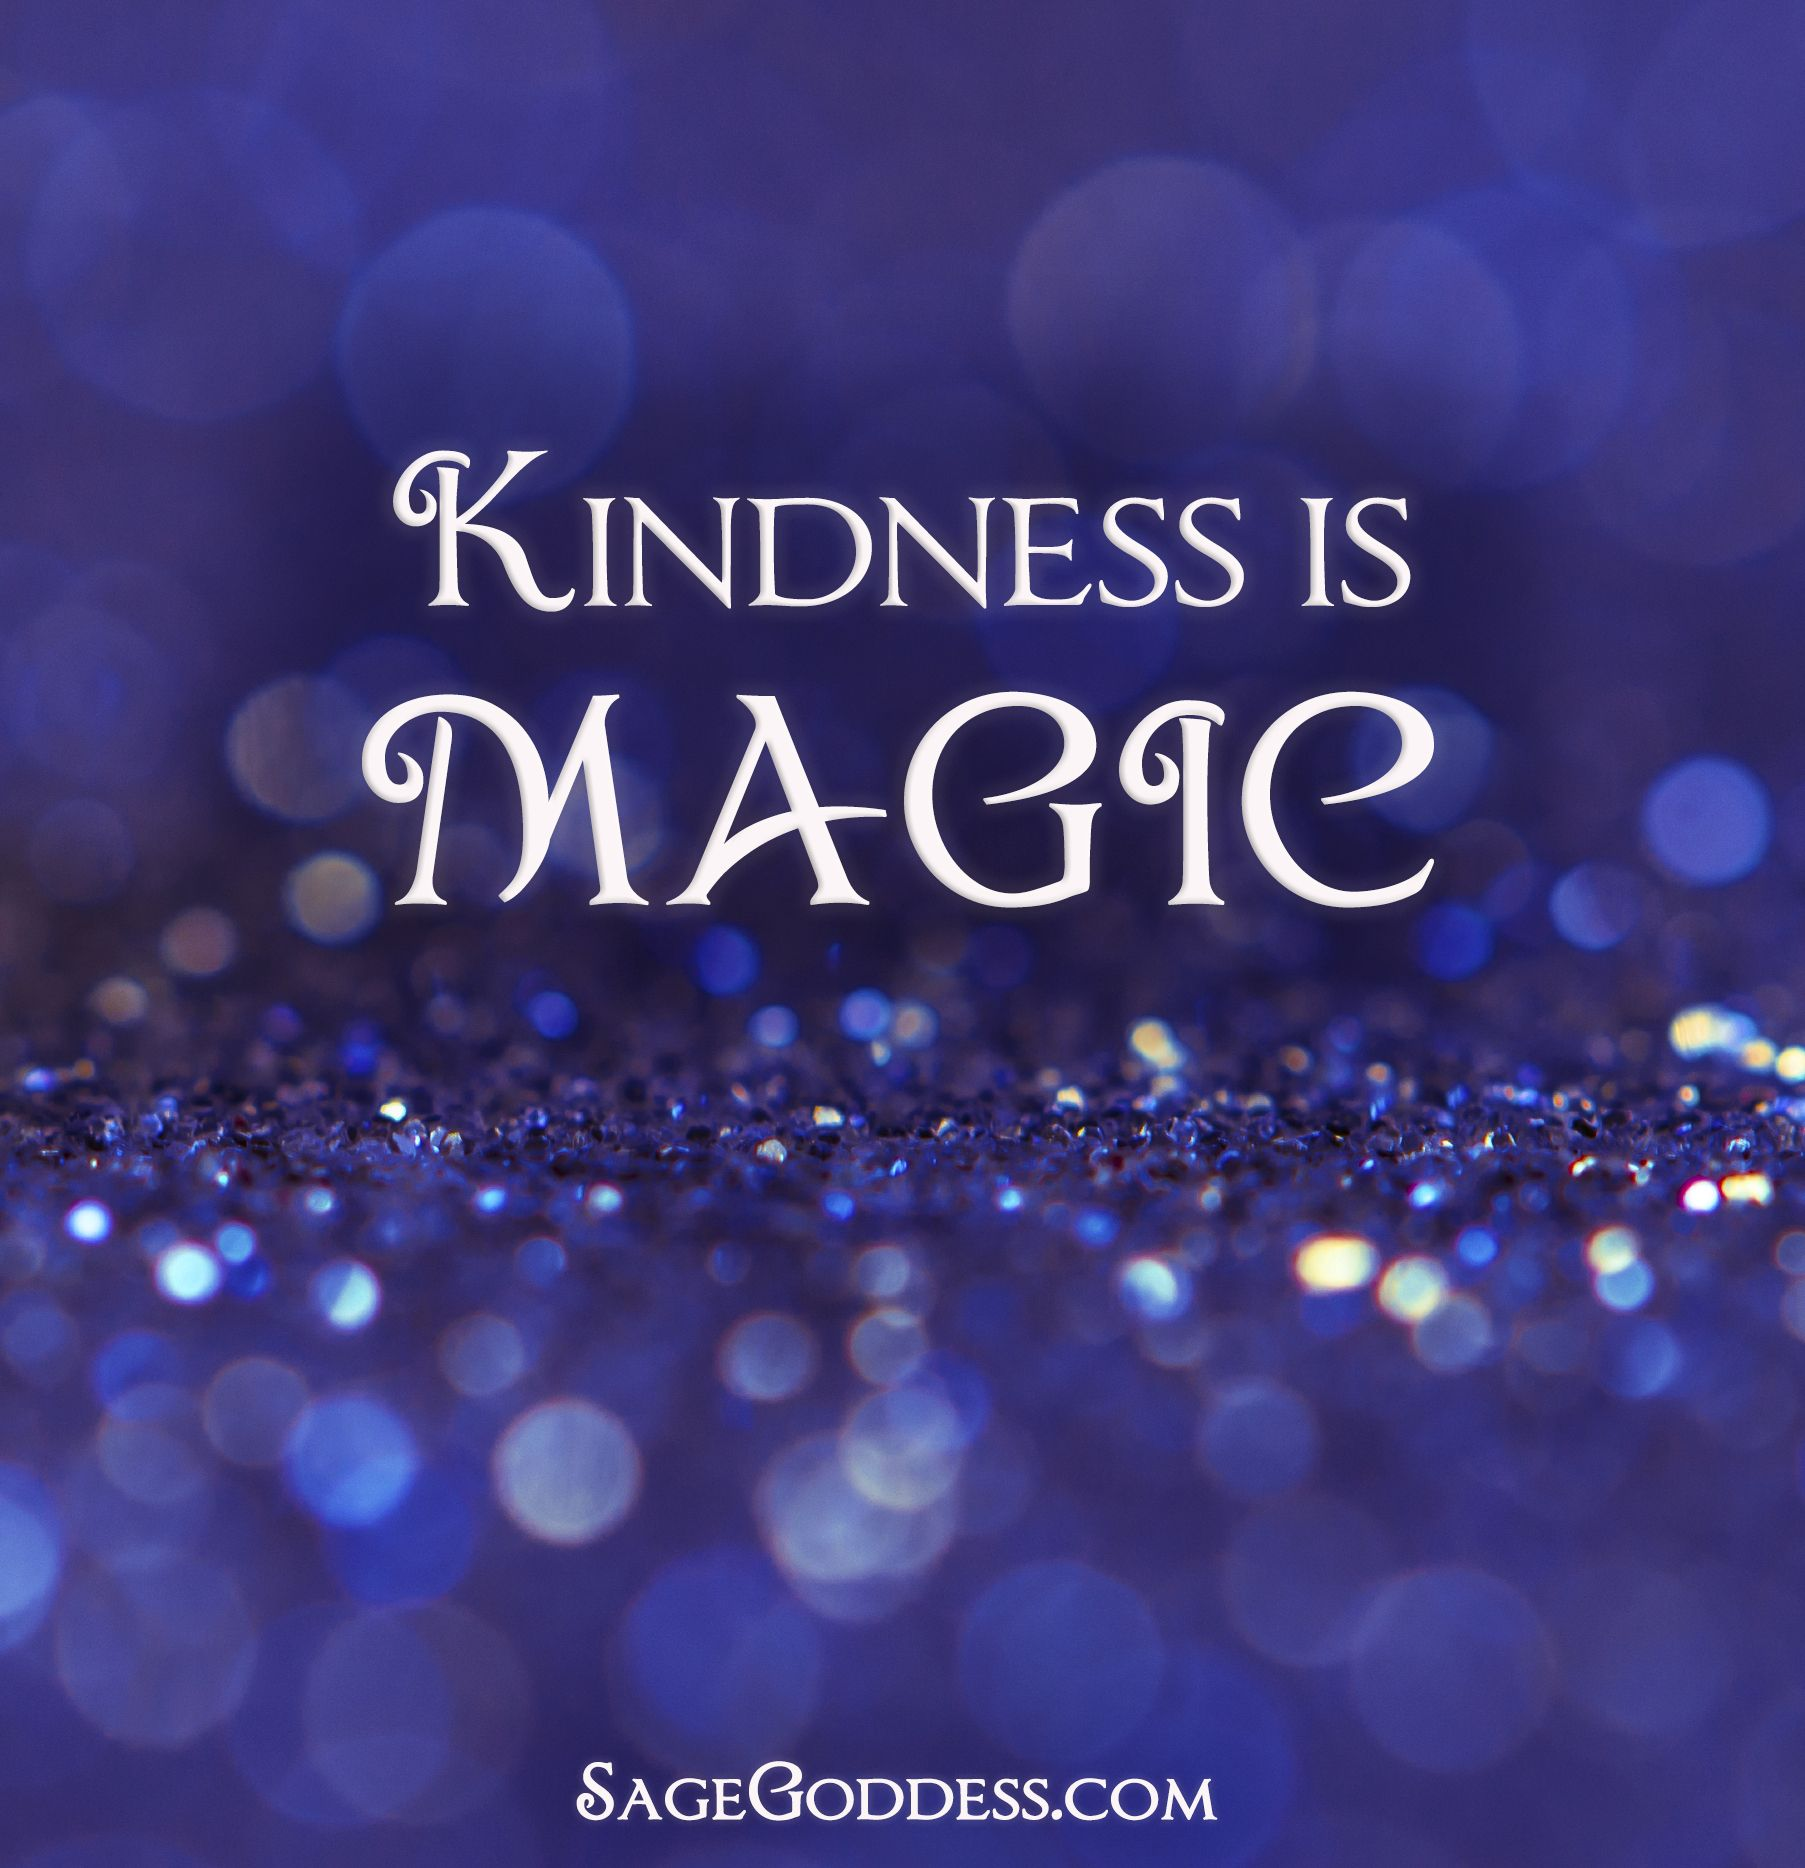 Kindness is magic. Always. #LifeQuotes | Kindness quotes